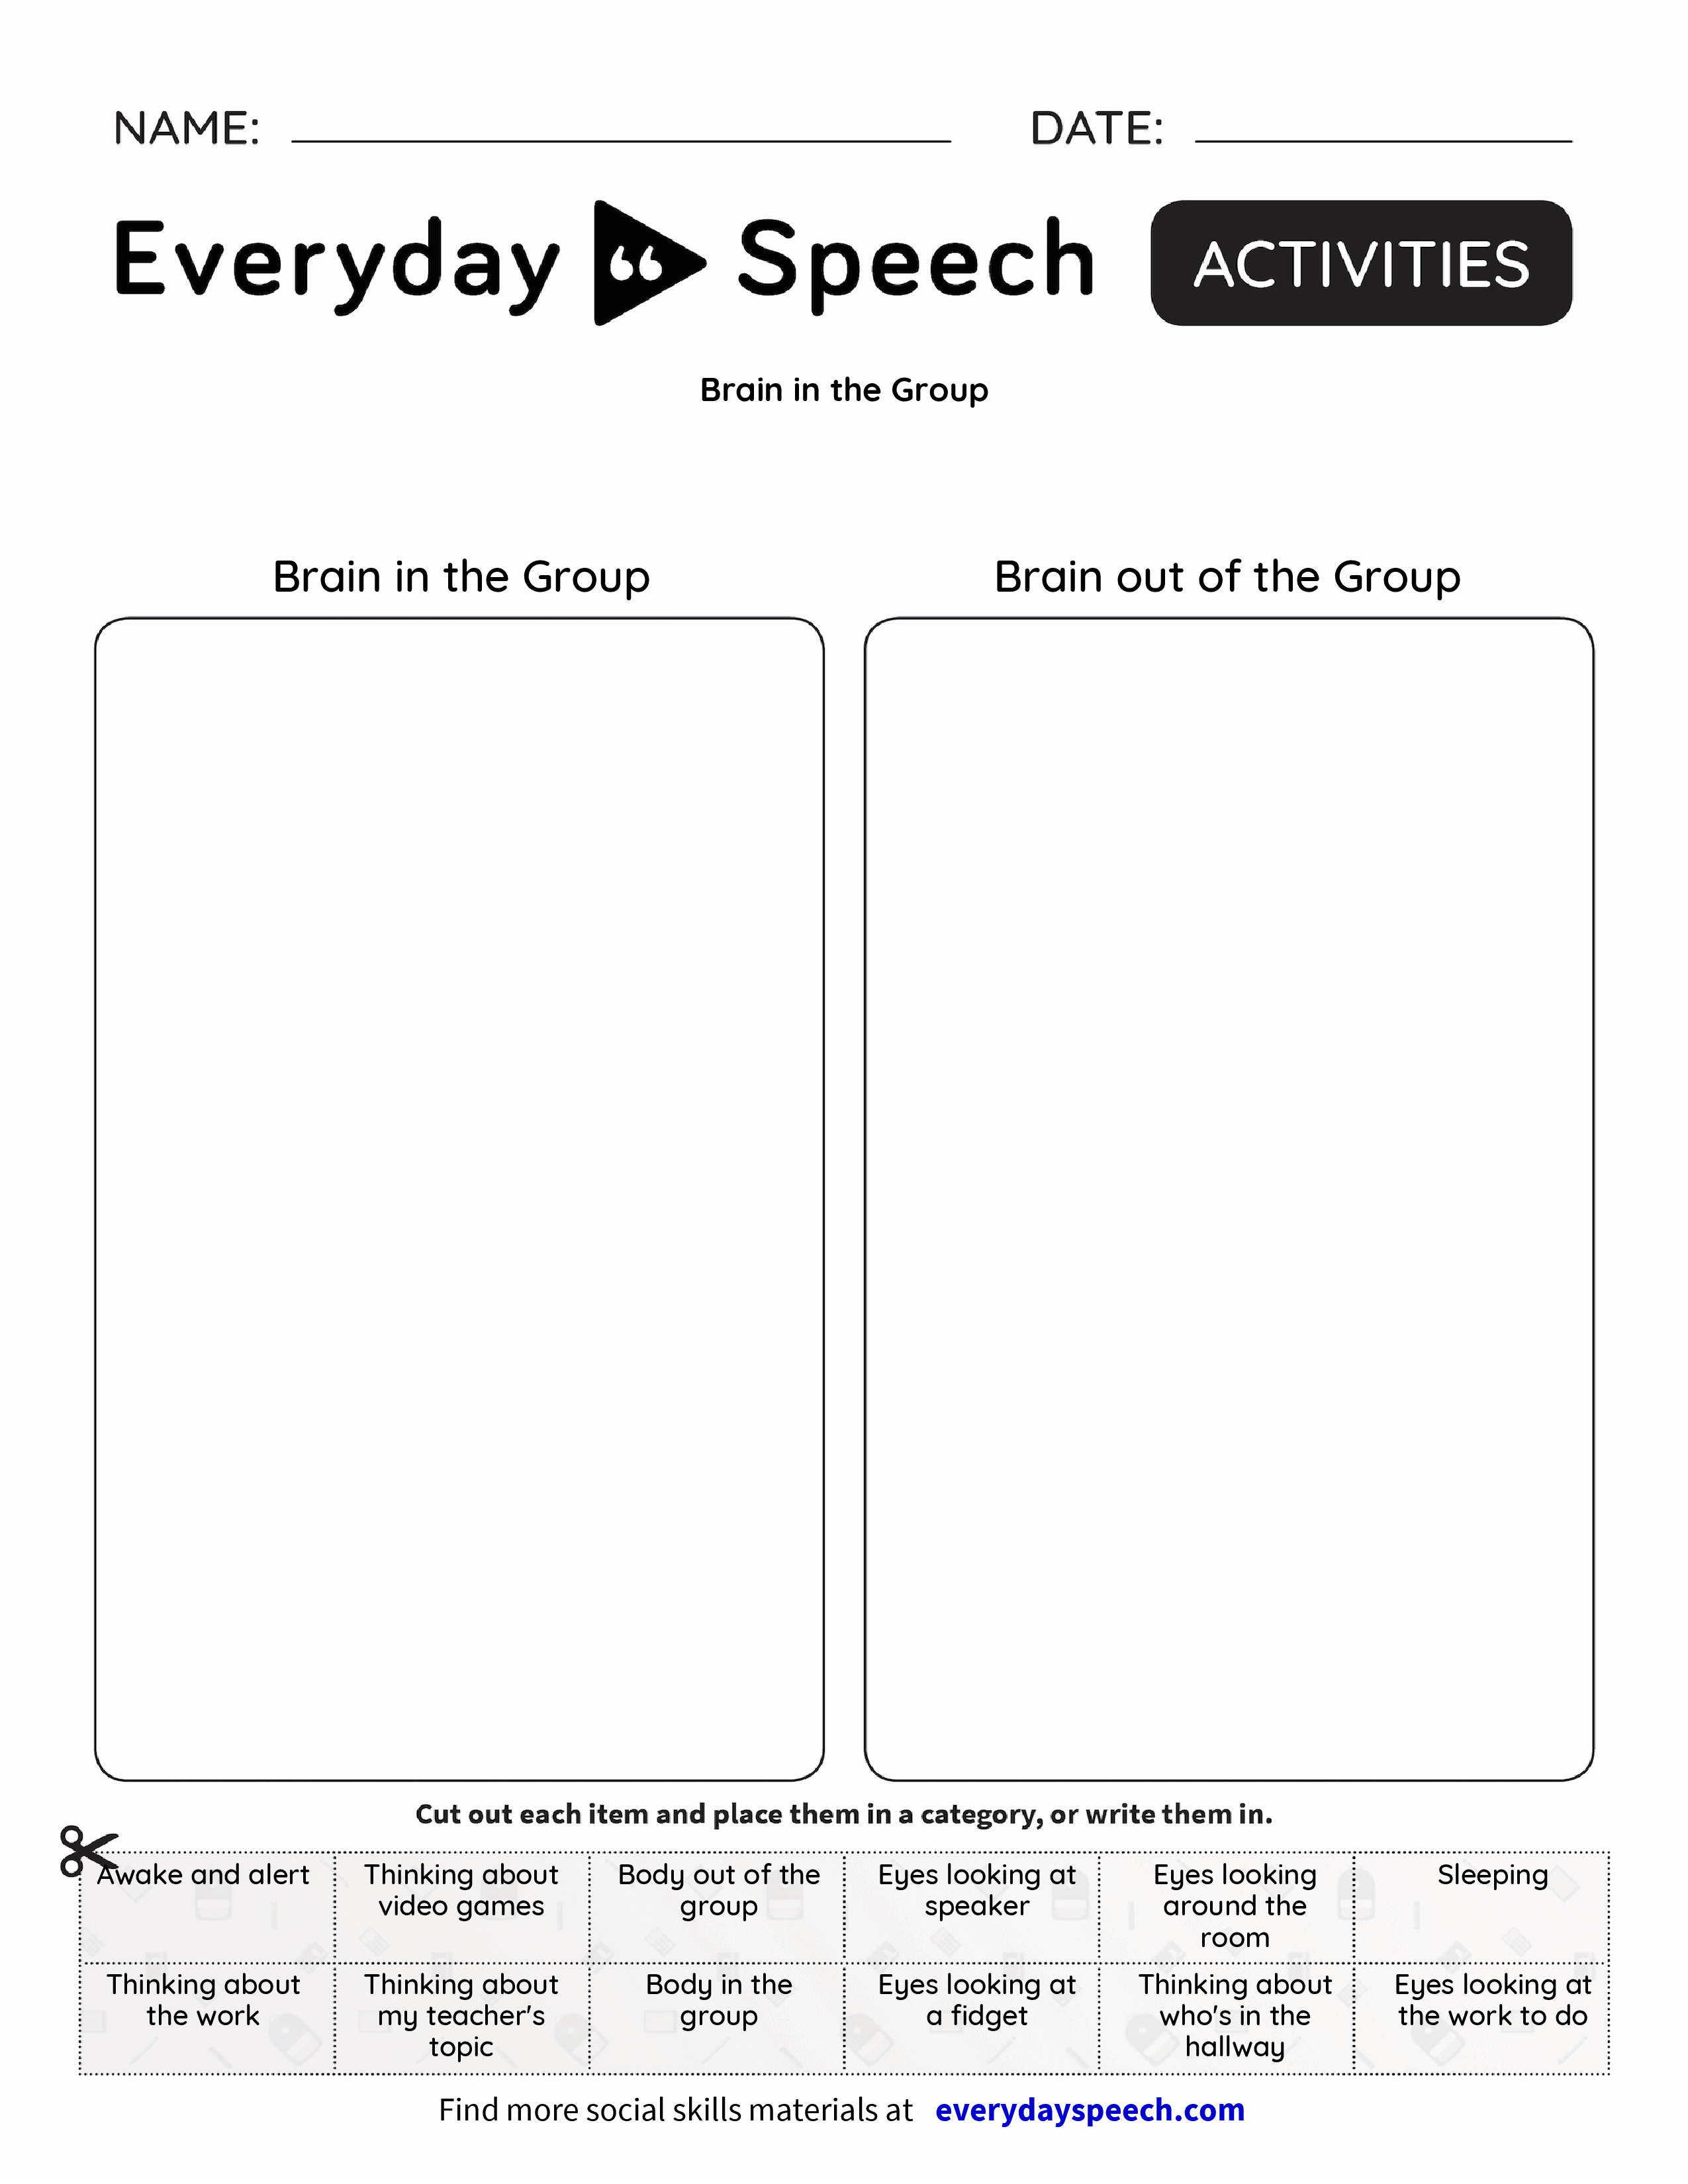 worksheet Brain Games Worksheets brain in the group everyday speech preview